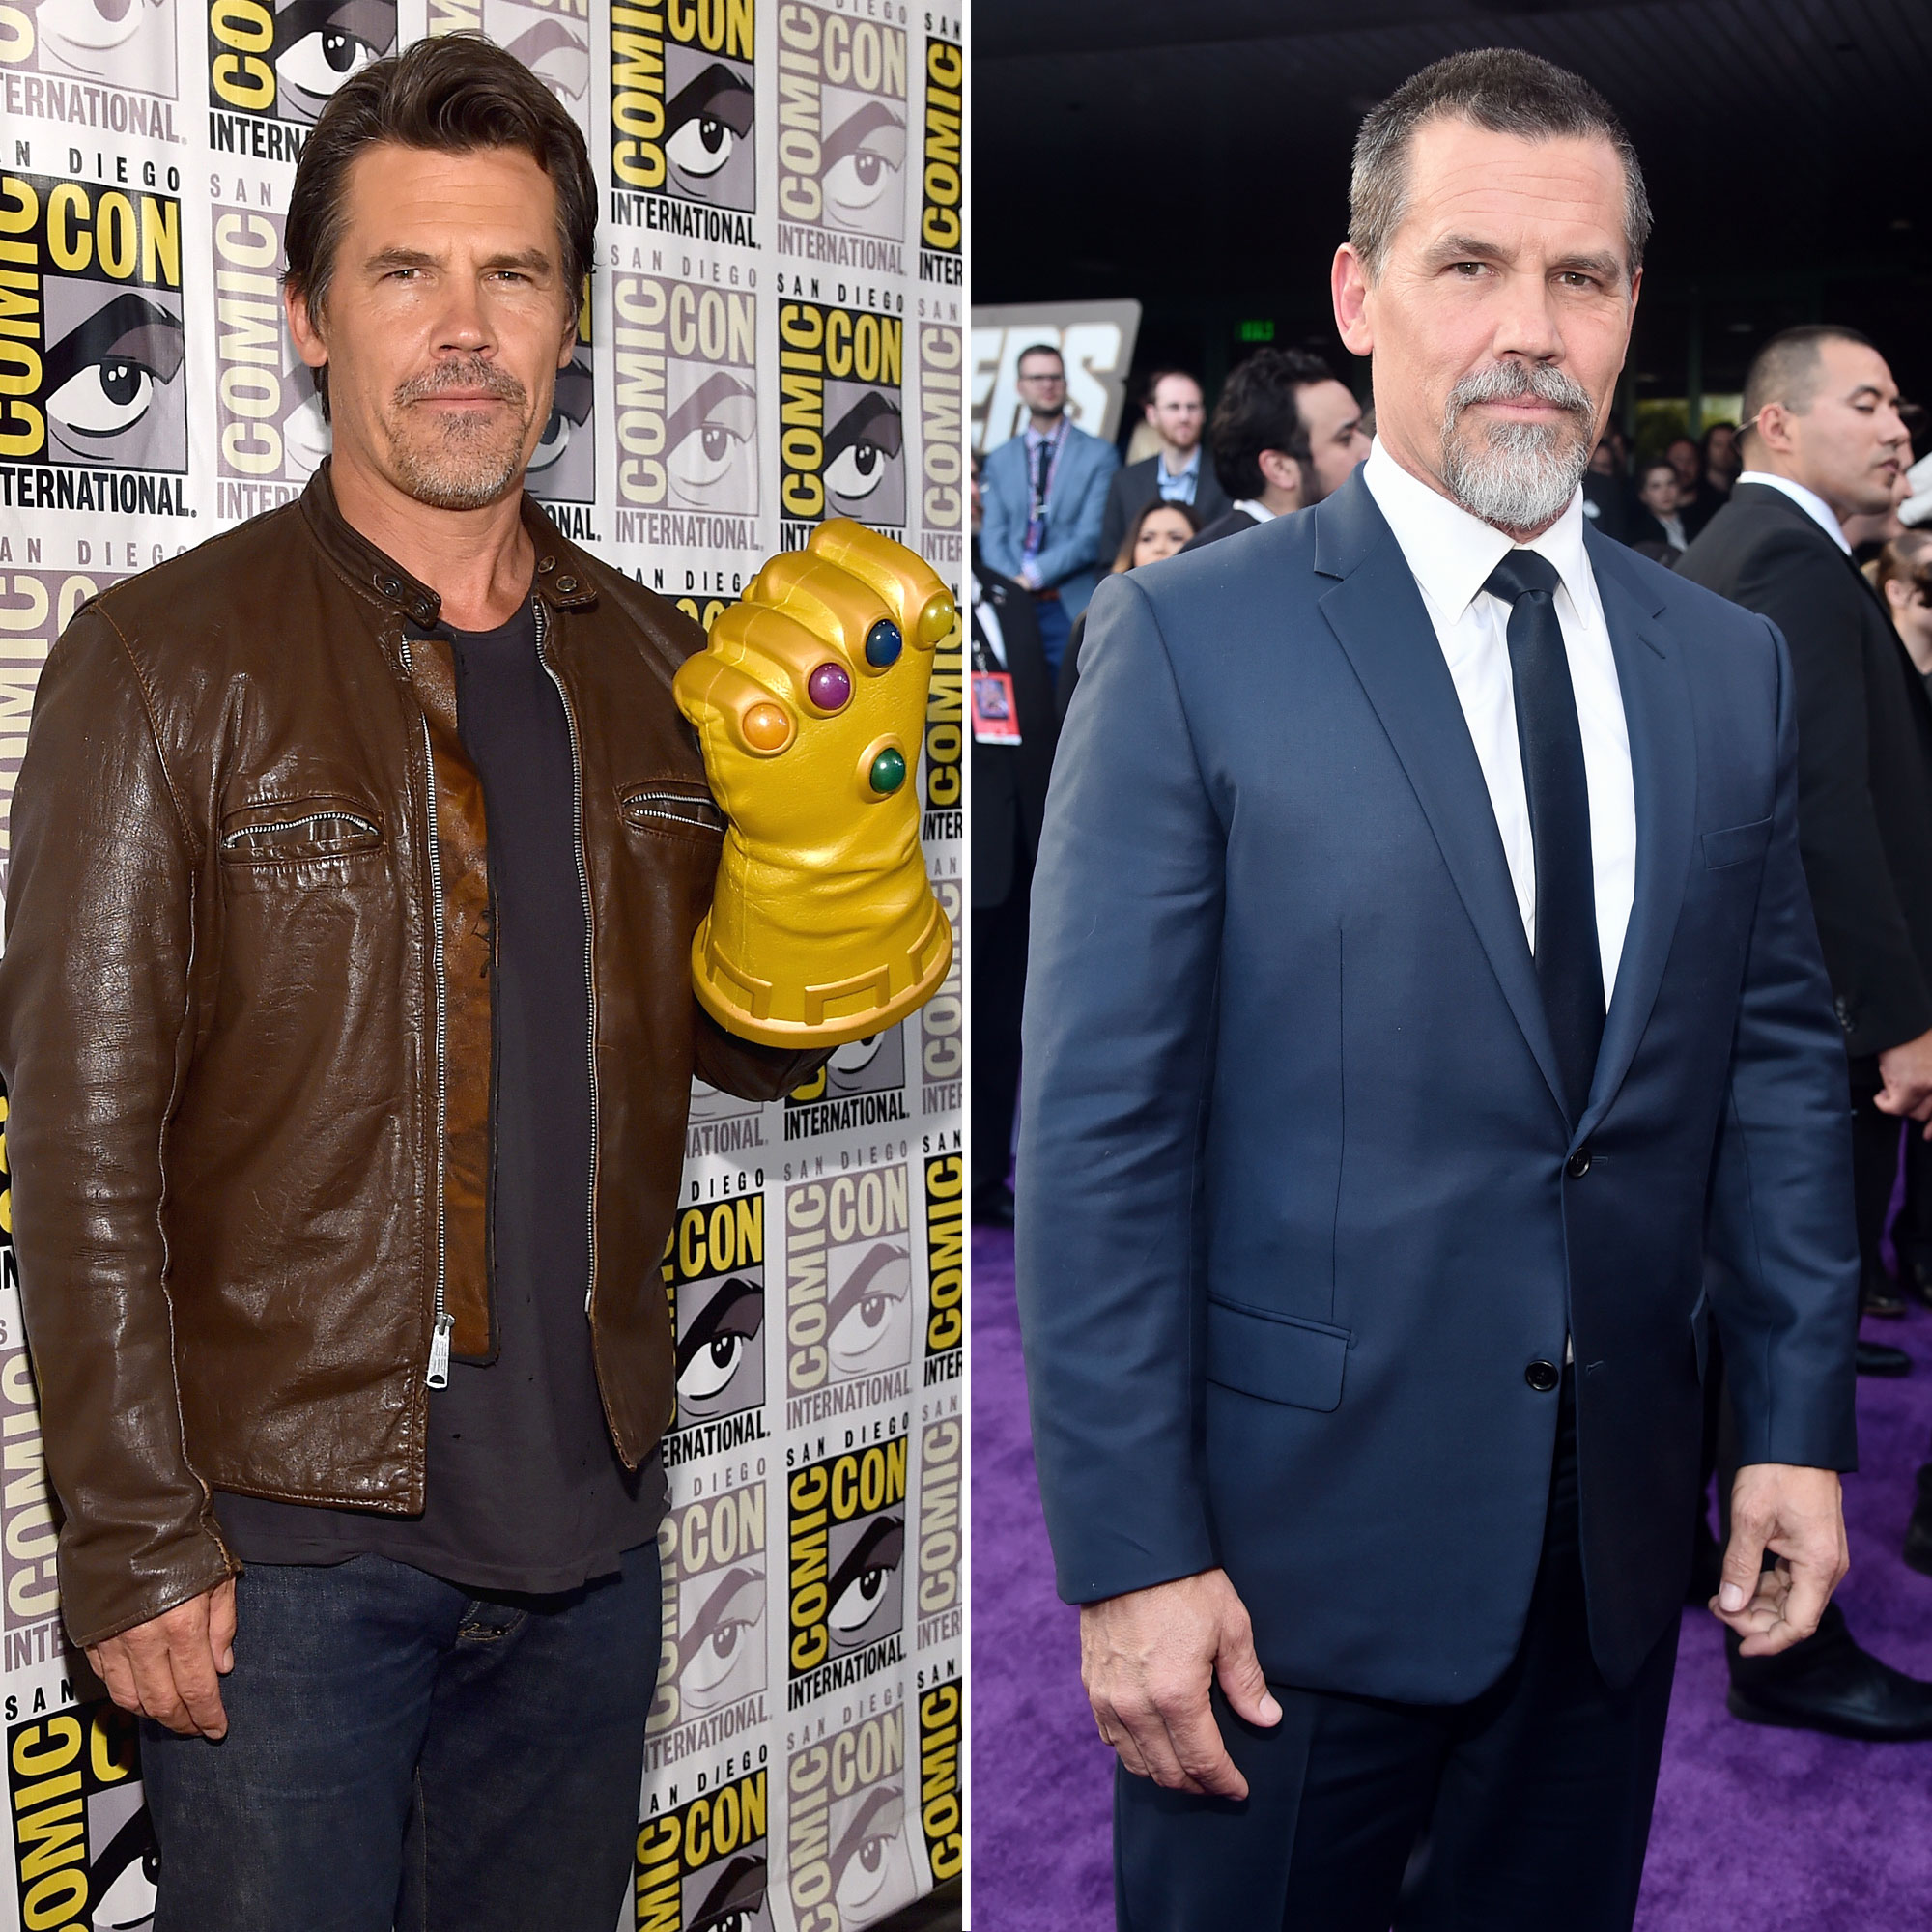 Josh Brolin Avengers Premiere First Super Red Carpet to Their Last - Brolin hit up San Diego Comic-Con festival for Age of Ultron in 2014 with dark brown locks and a brown leather jacket. Five years later, he showed off his distinguished grays and a sleek suit for Endgame .